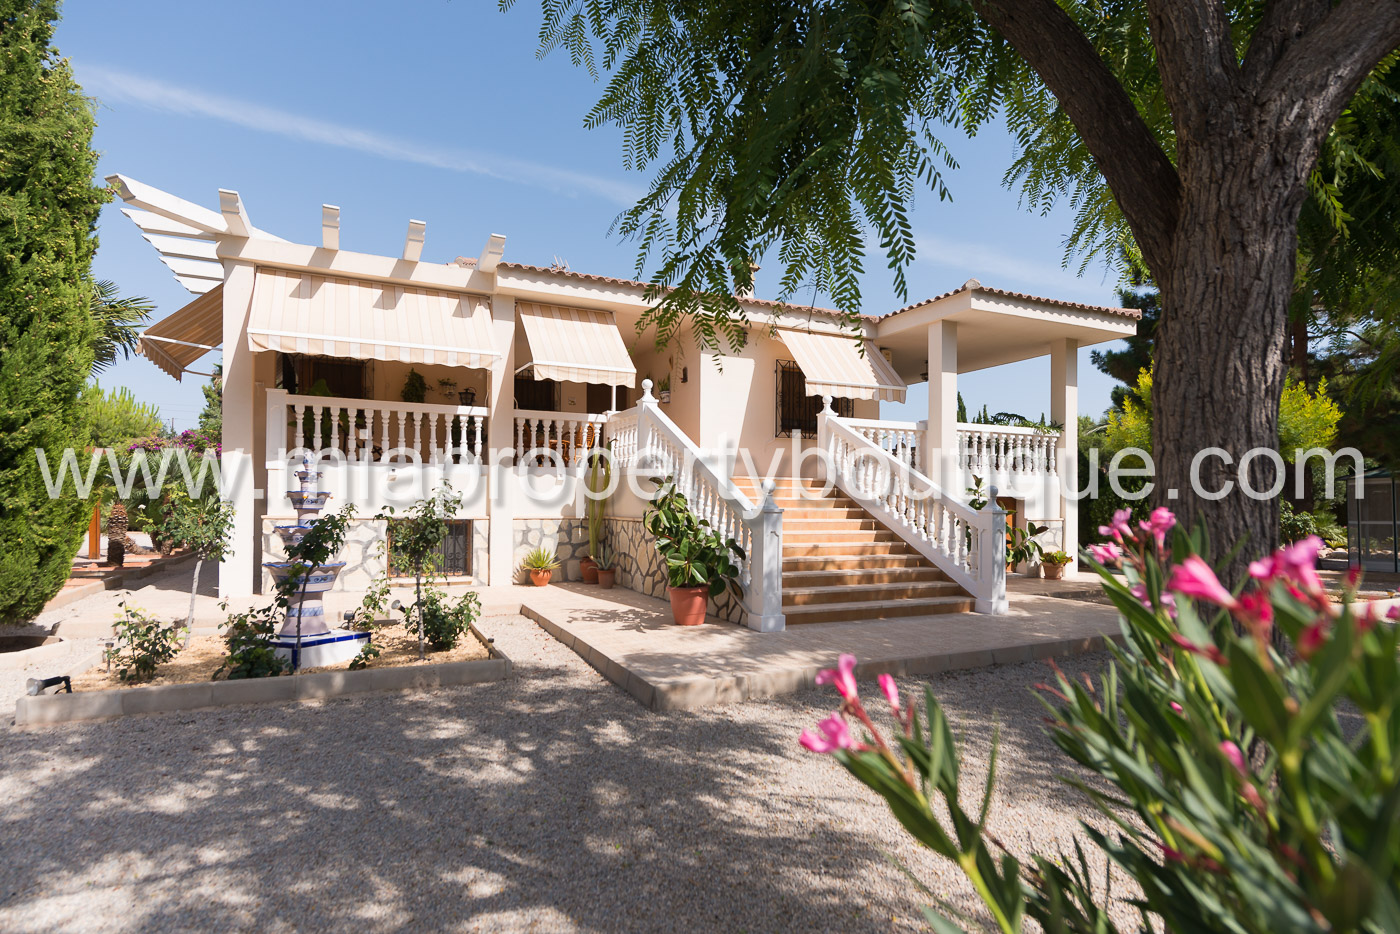 Spectacular detached villa with Fairytale Garden, San Vicente, Alicante